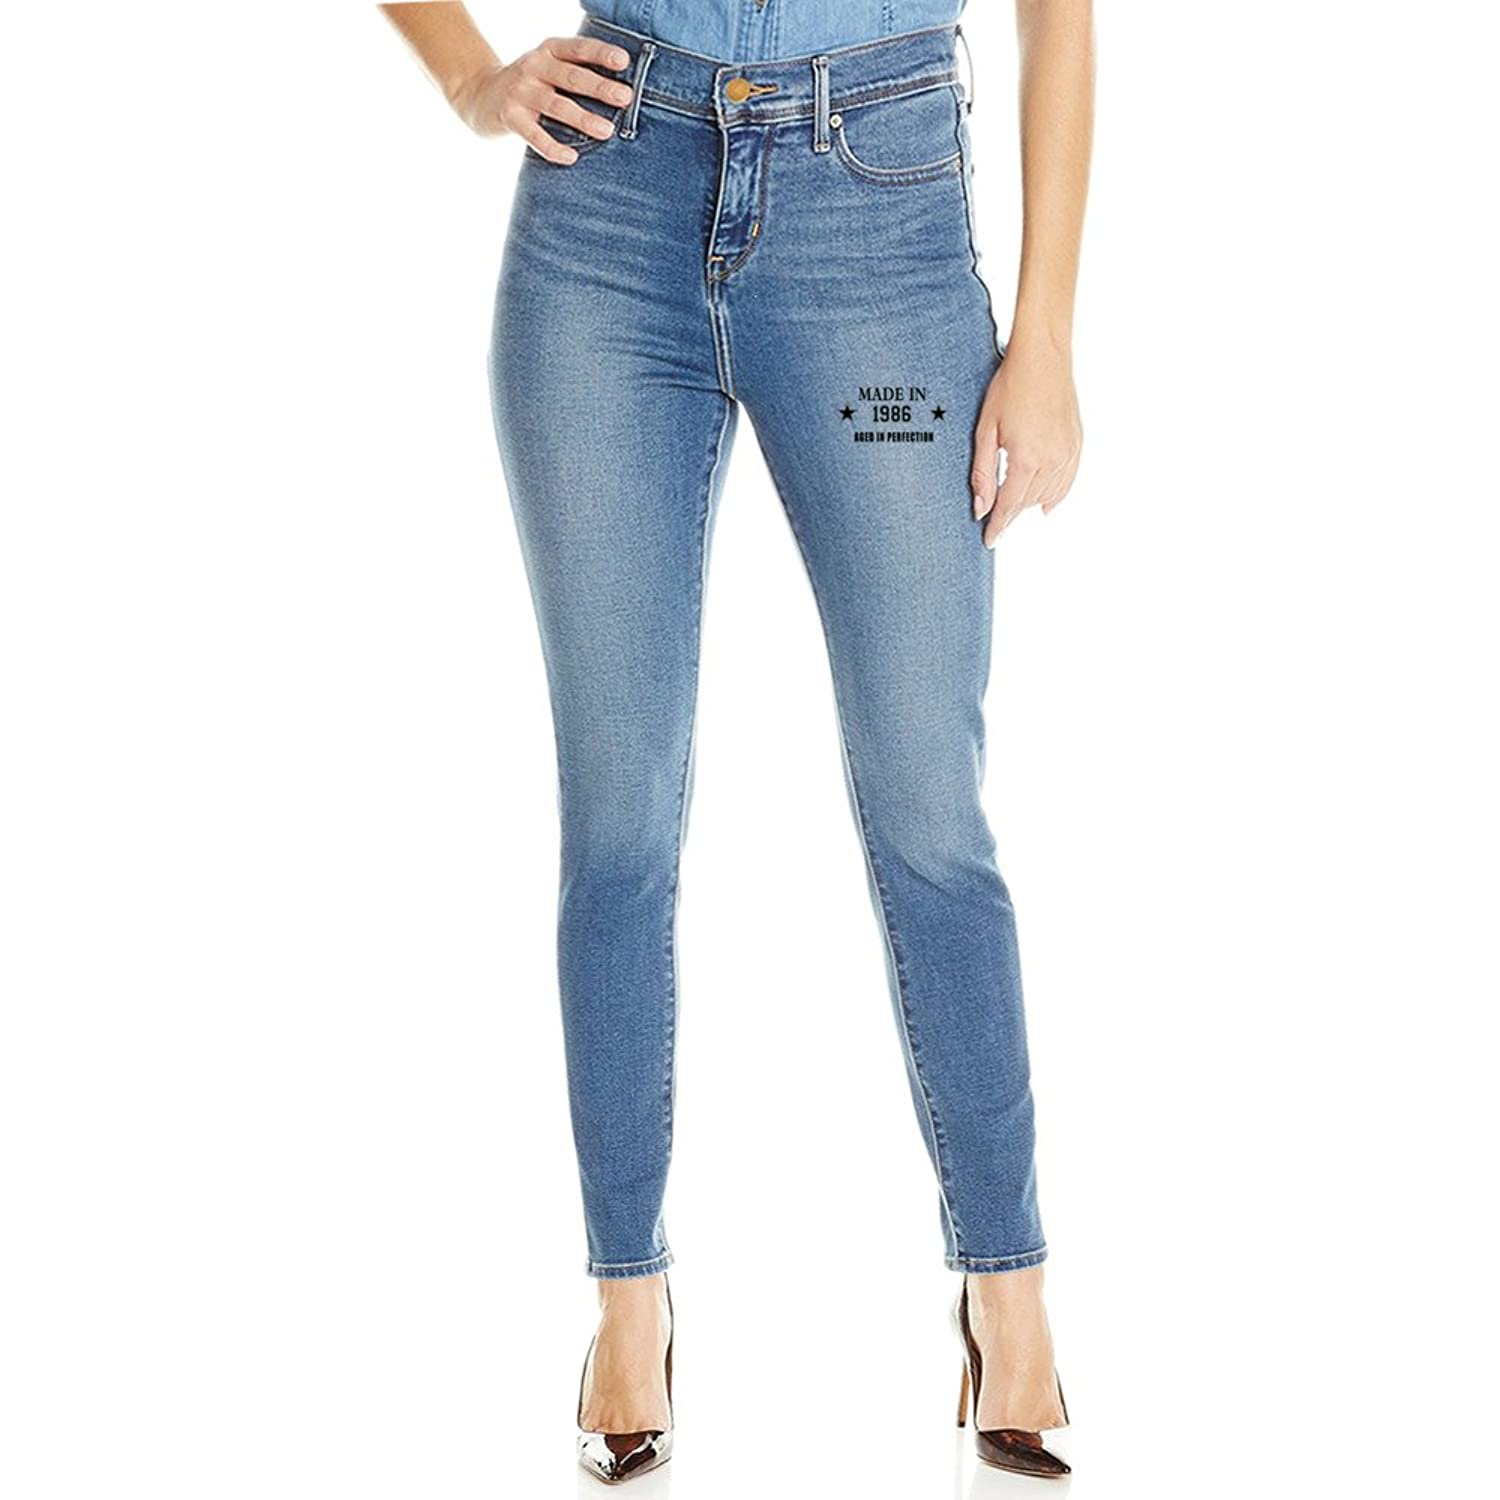 Women's Made In 1986 AGED Mid Waist Stretch Skinny Jeans